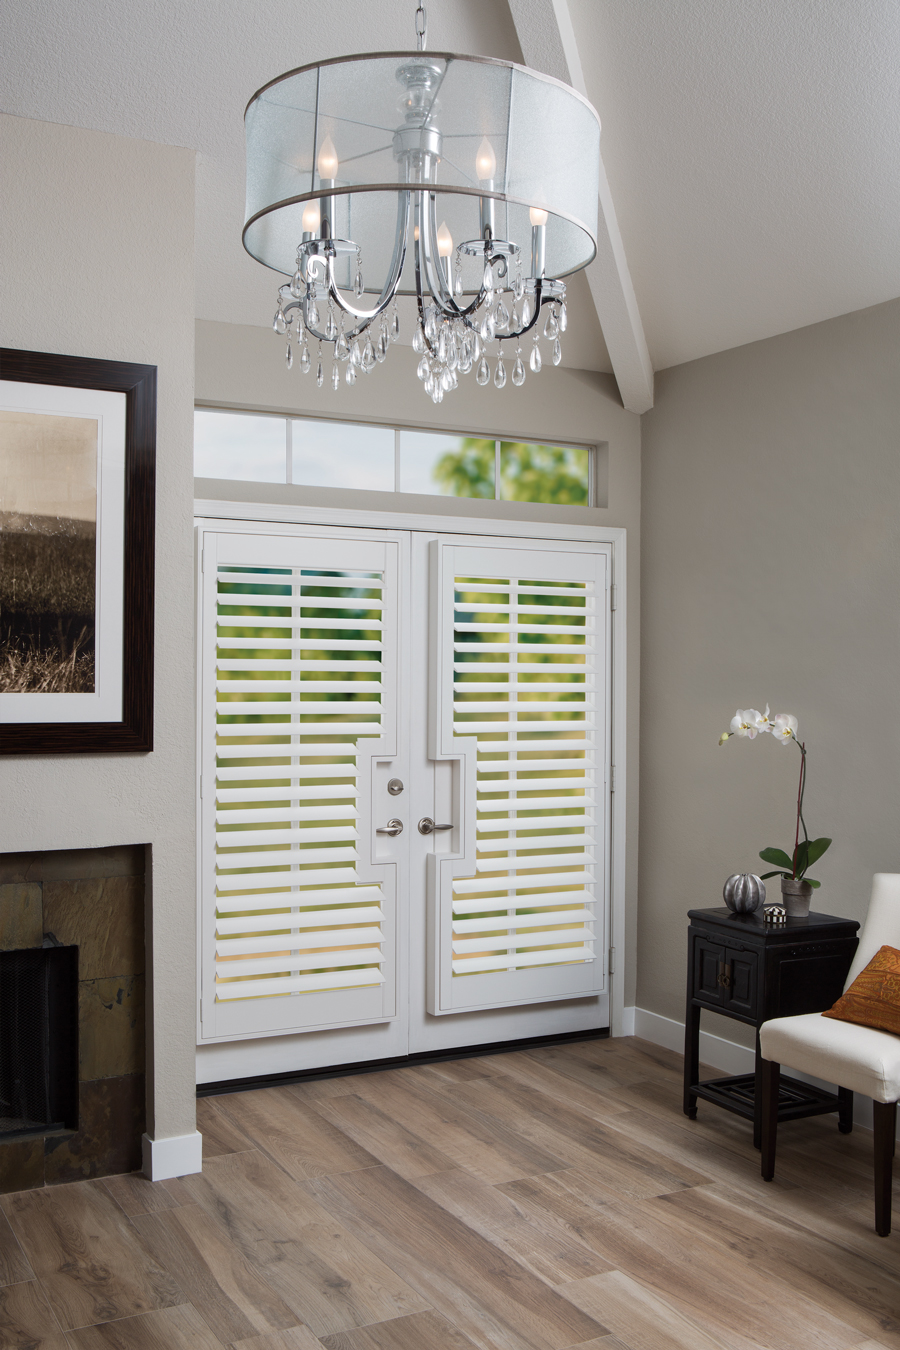 Greige white entryway white plantation shutters for doors Hunter Douglas San Antonio 78249